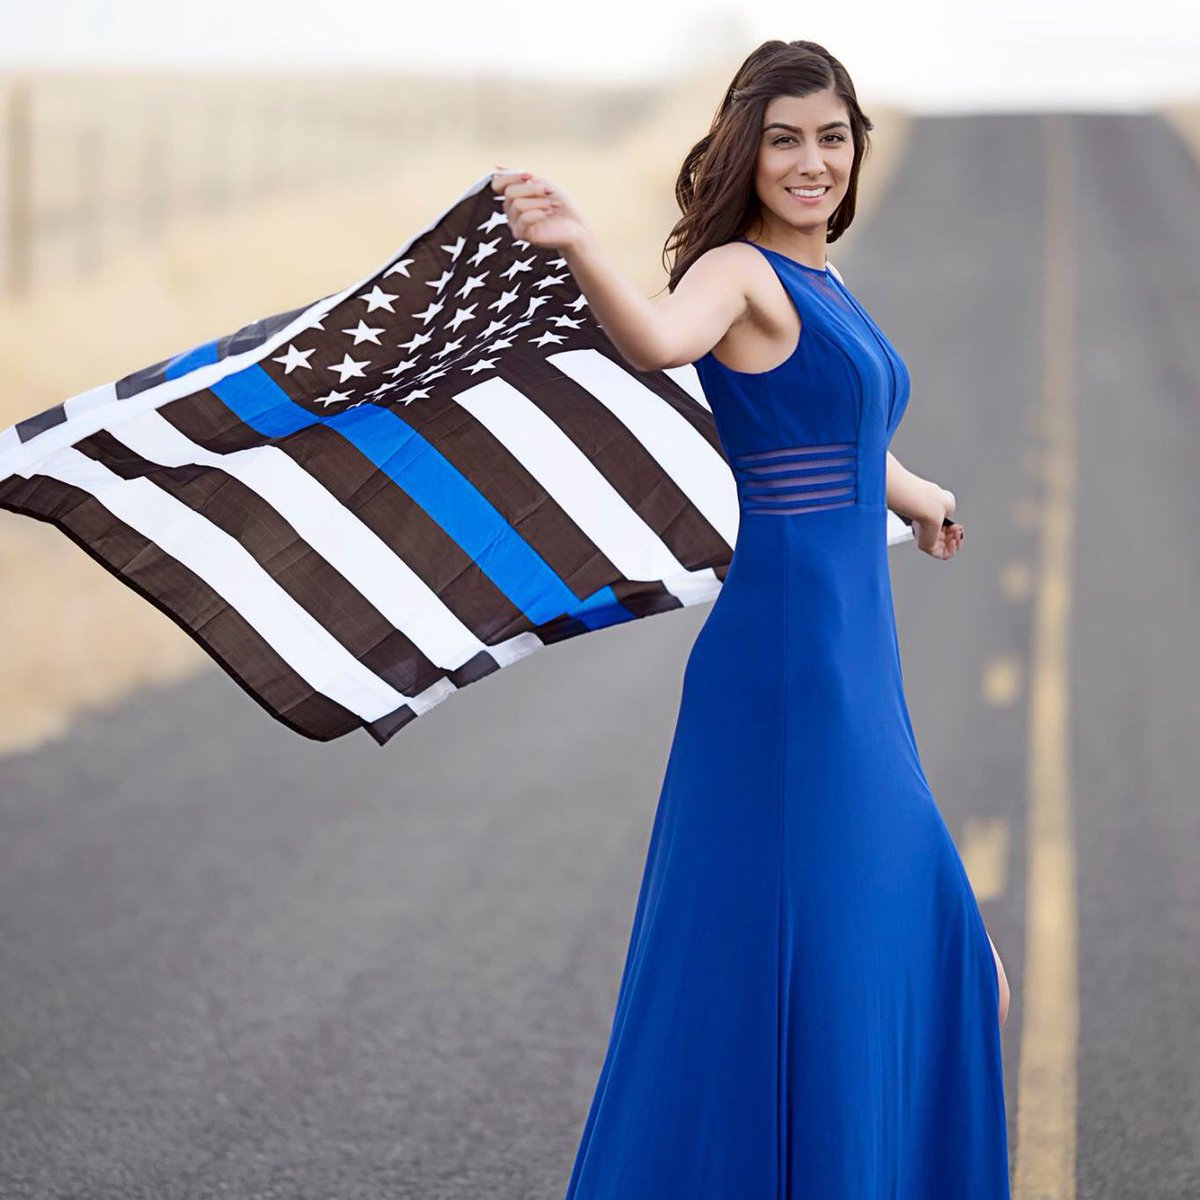 We are devastated to learn that Davis Police Officer Natalie Corona was murdered last night while serving her community.  Natalie had recently graduated from the Sacramento Police Academy.  She will always be part of our Sacramento family. <br>http://pic.twitter.com/HcV0IEQuSH